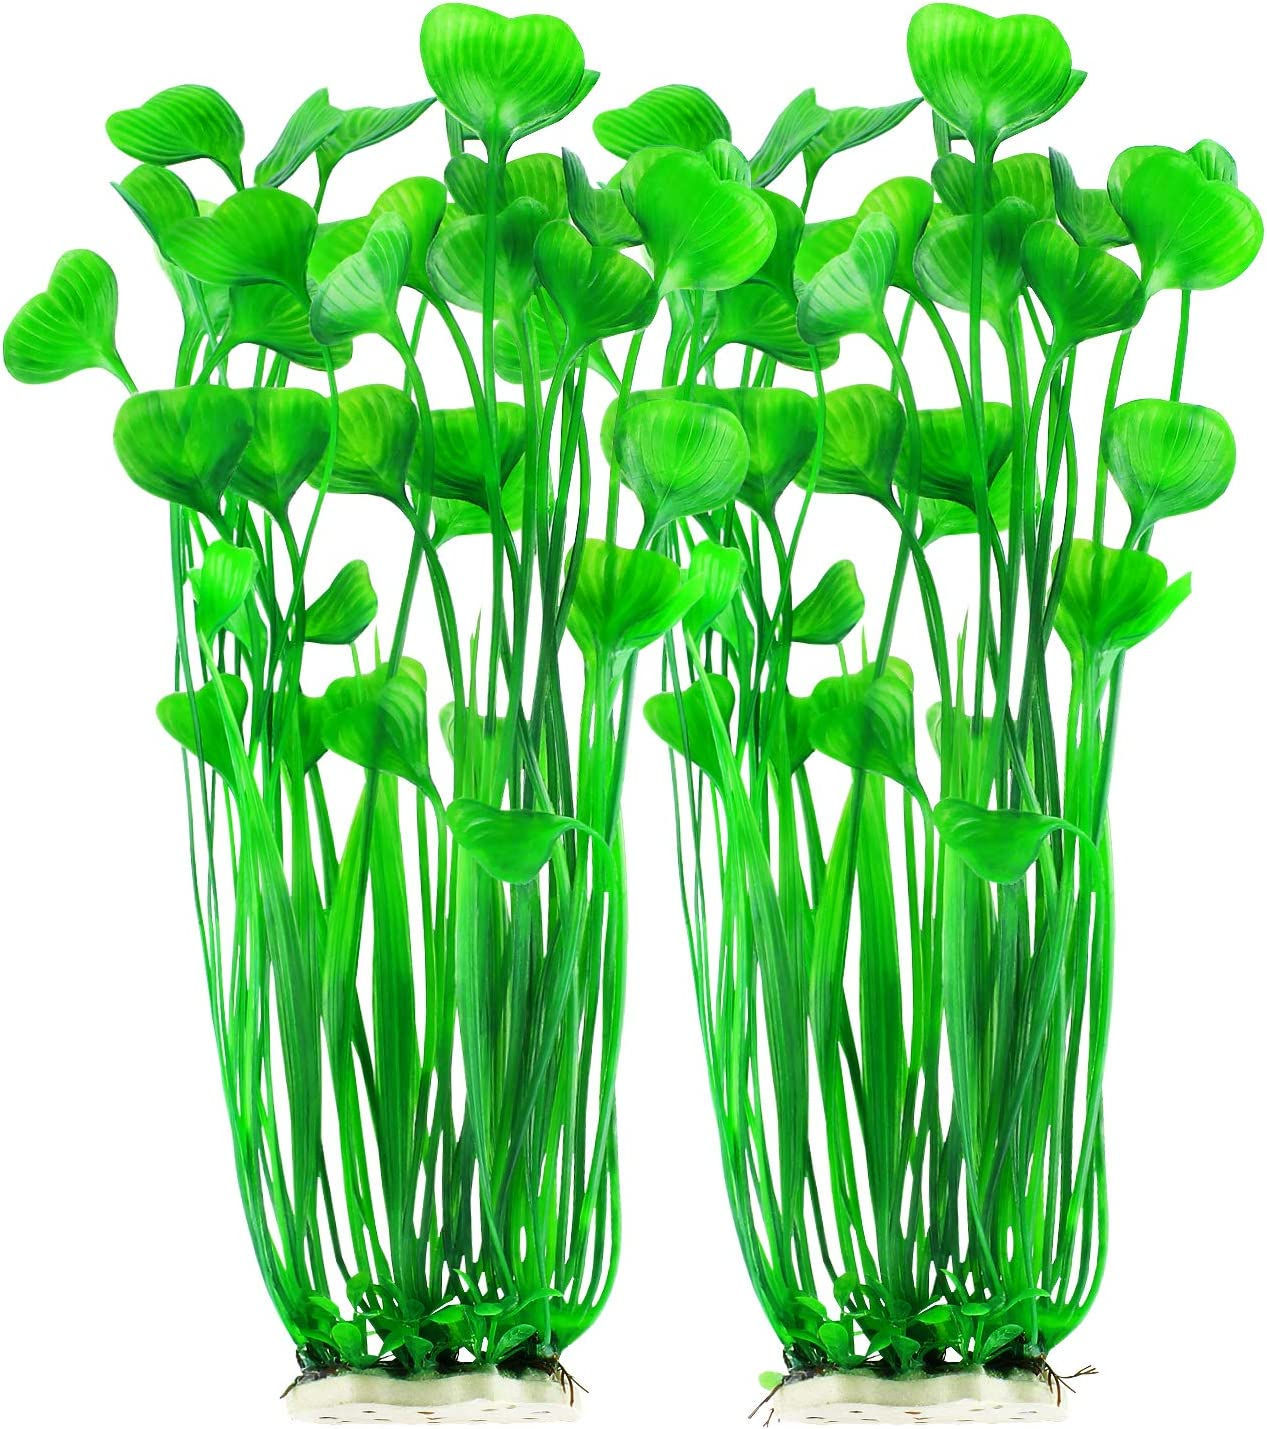 MyLifeUNIT Plastic Fish Tank Plants, Artificial Tall Aquarium Plants for Fish Tank Decor, 15.75 Inches (Pack of 2)